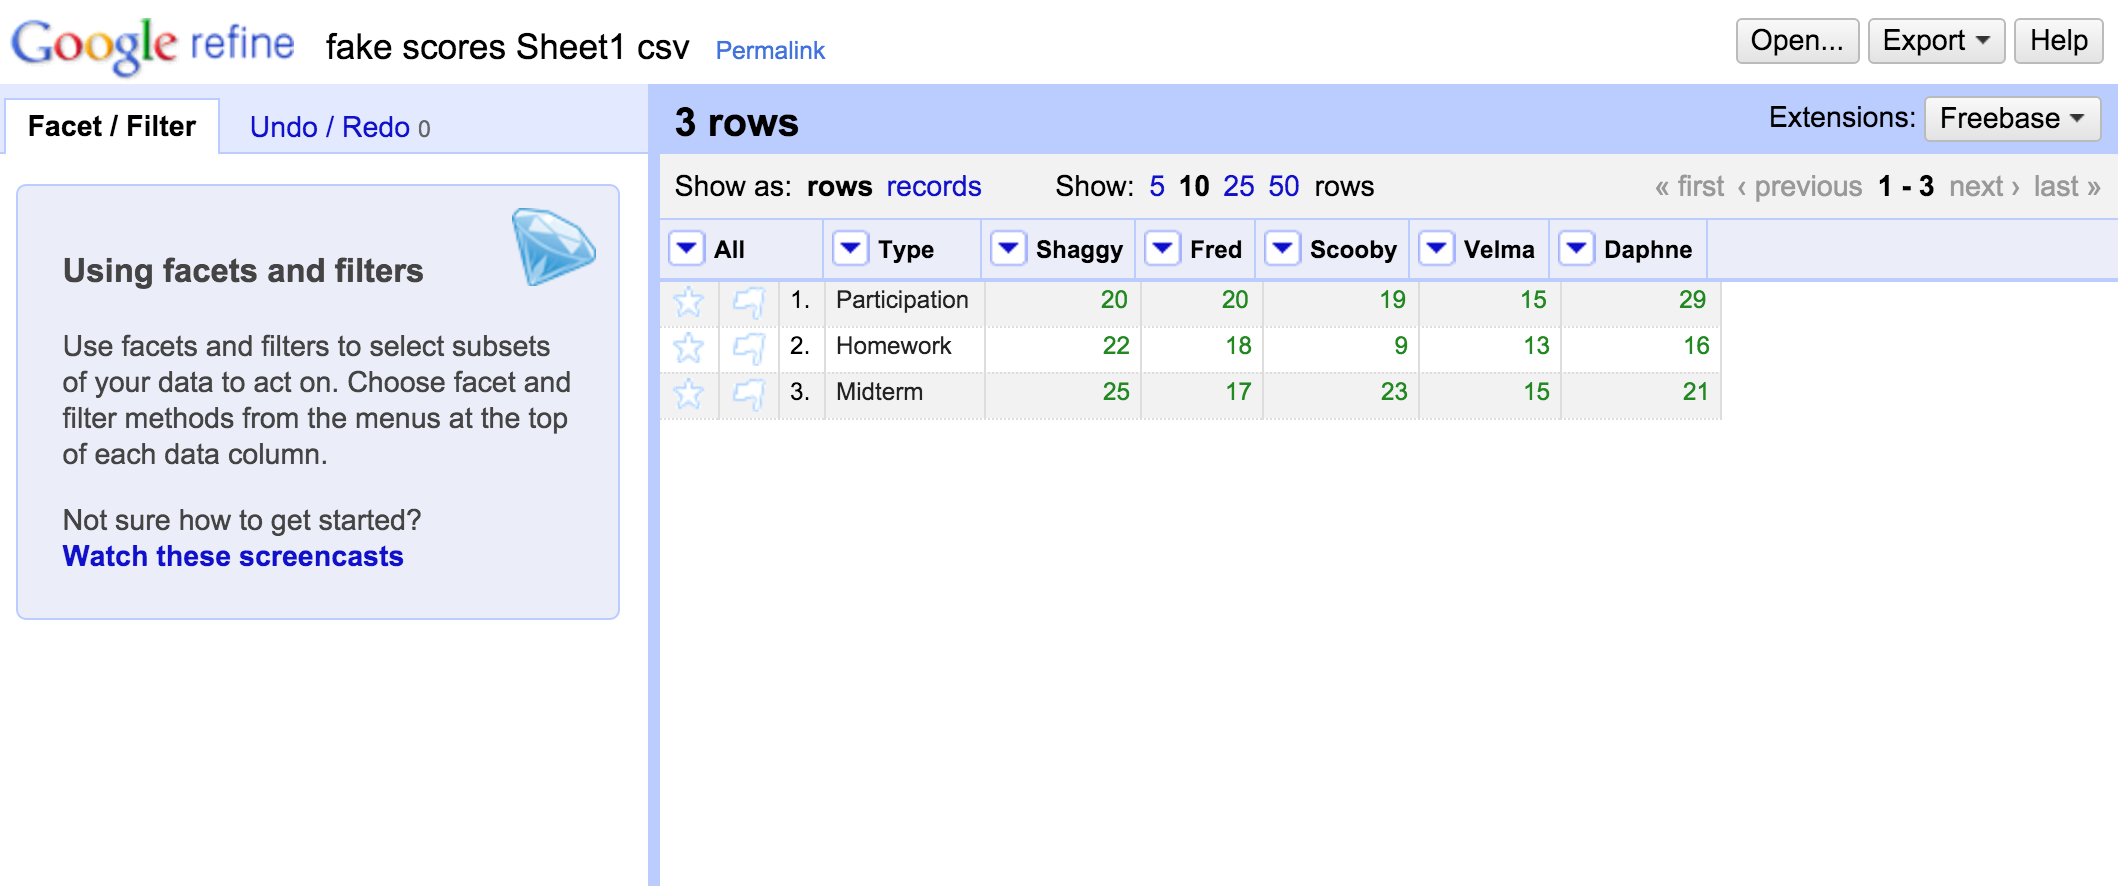 Json To Spreadsheet Converter For Converting Data To Json Format · Data Journalism At Ccsu Jrn418 Json To Spreadsheet Converter Google Spreadshee Google Spreadshee json to spreadsheet converter